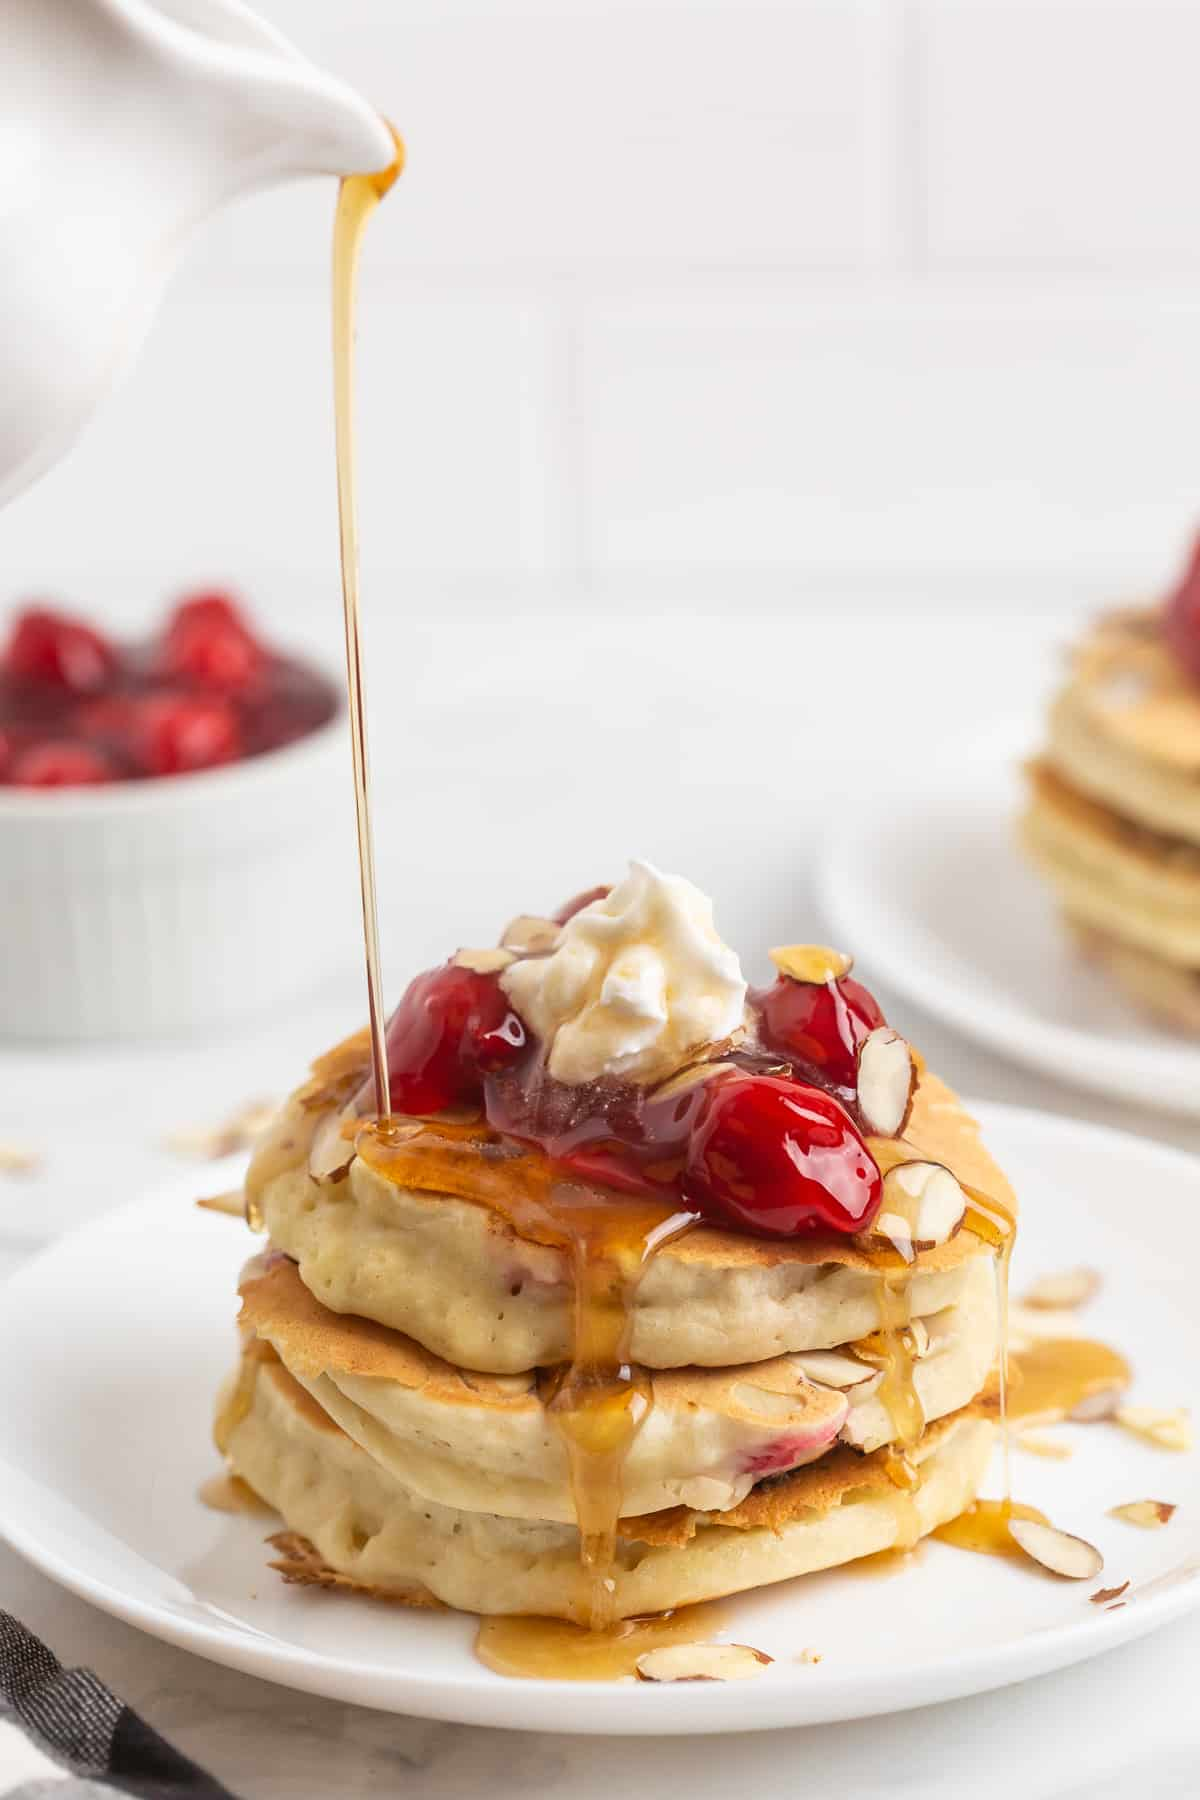 Cherries and whipped crema on top of a stack of pancakes, being drizzled with syrup.